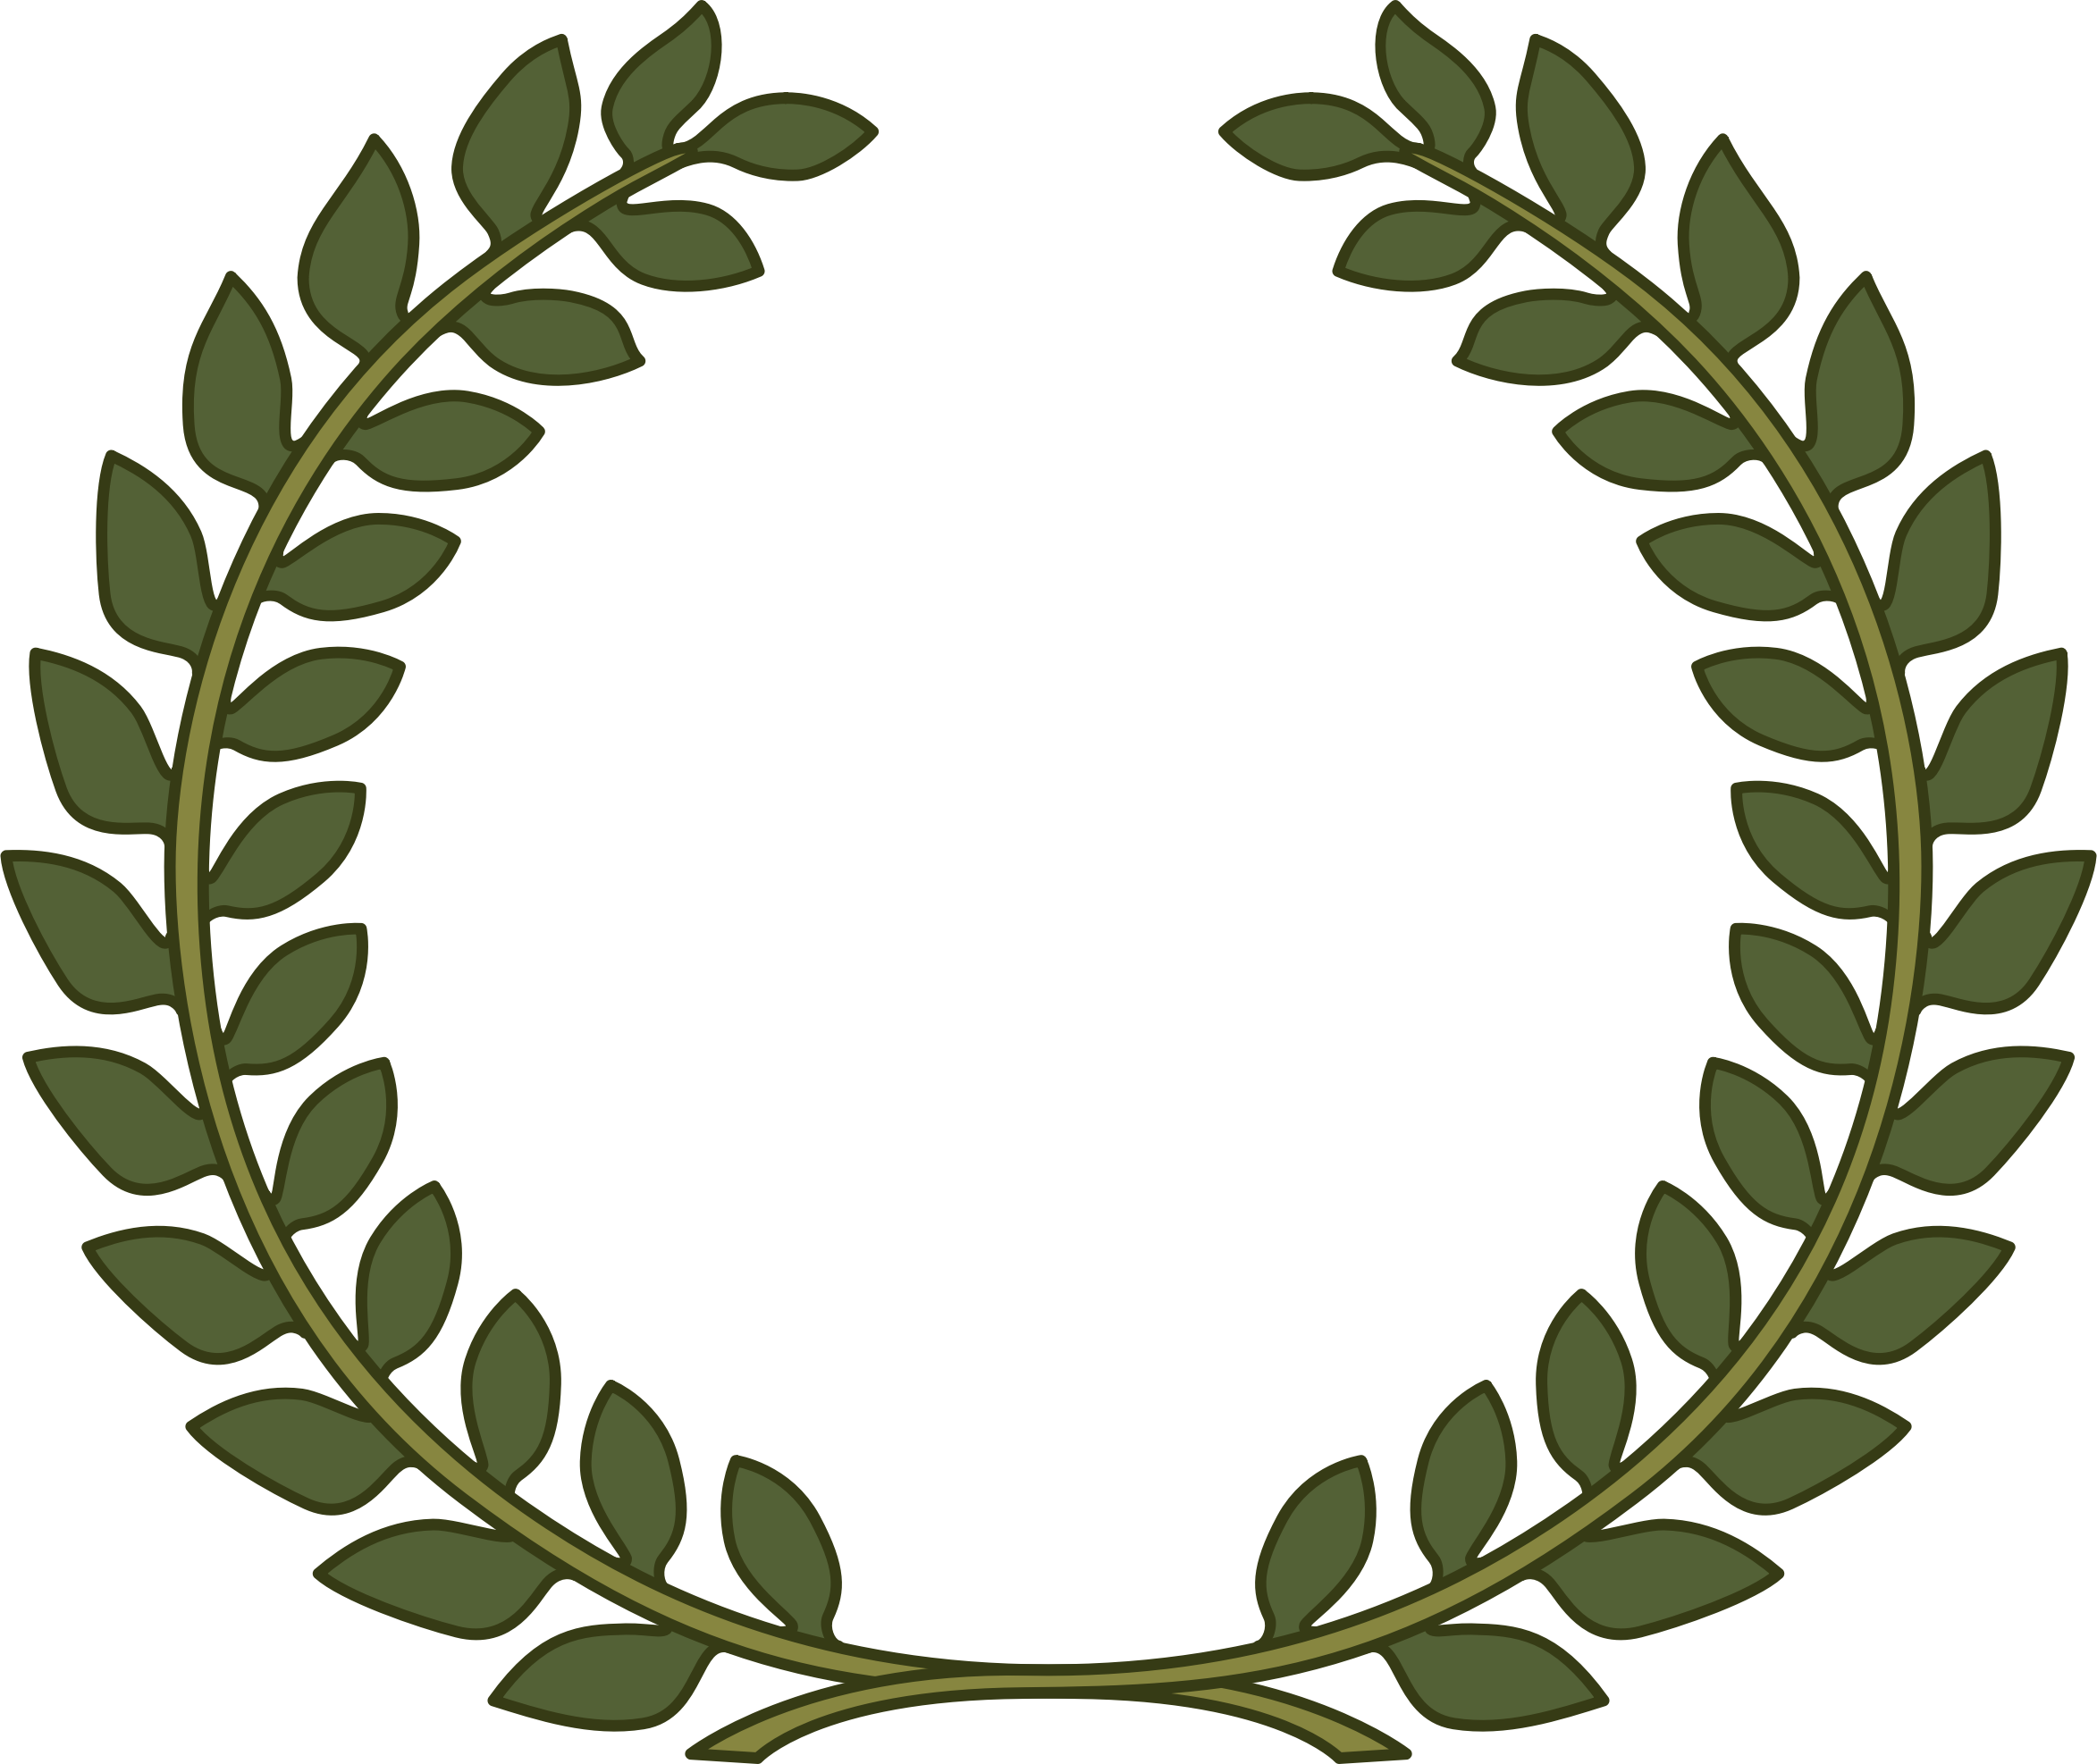 Laurel leaf png. Wreath icons free and